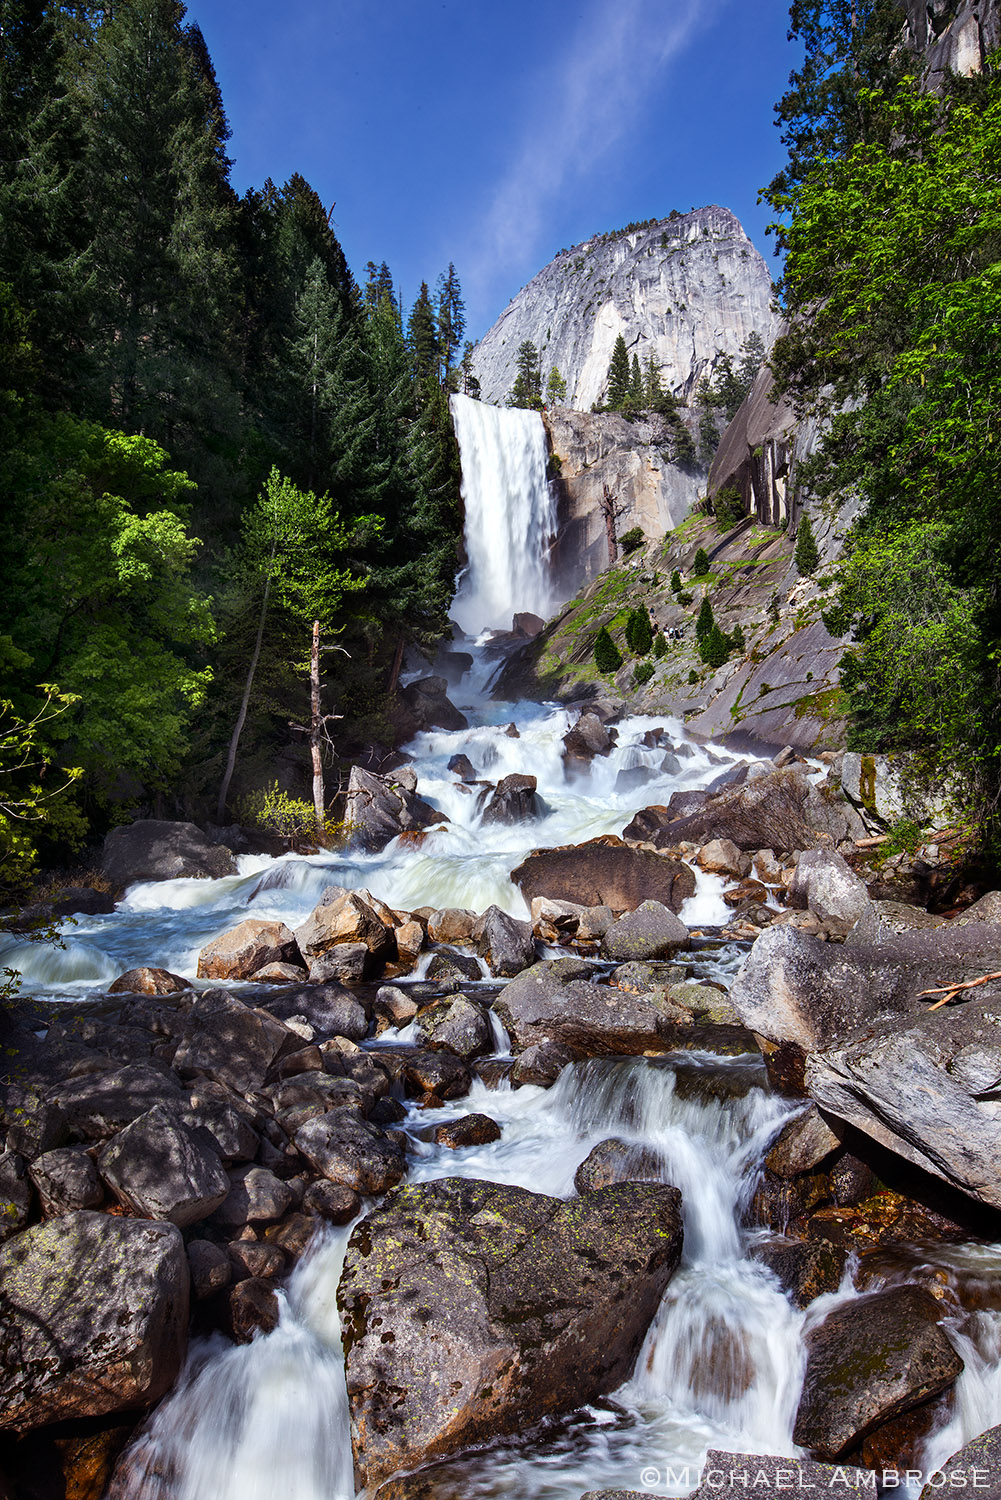 In the summer the Merced river water rushes over a cliff creating Vernal Fall in Yosemite National Park.